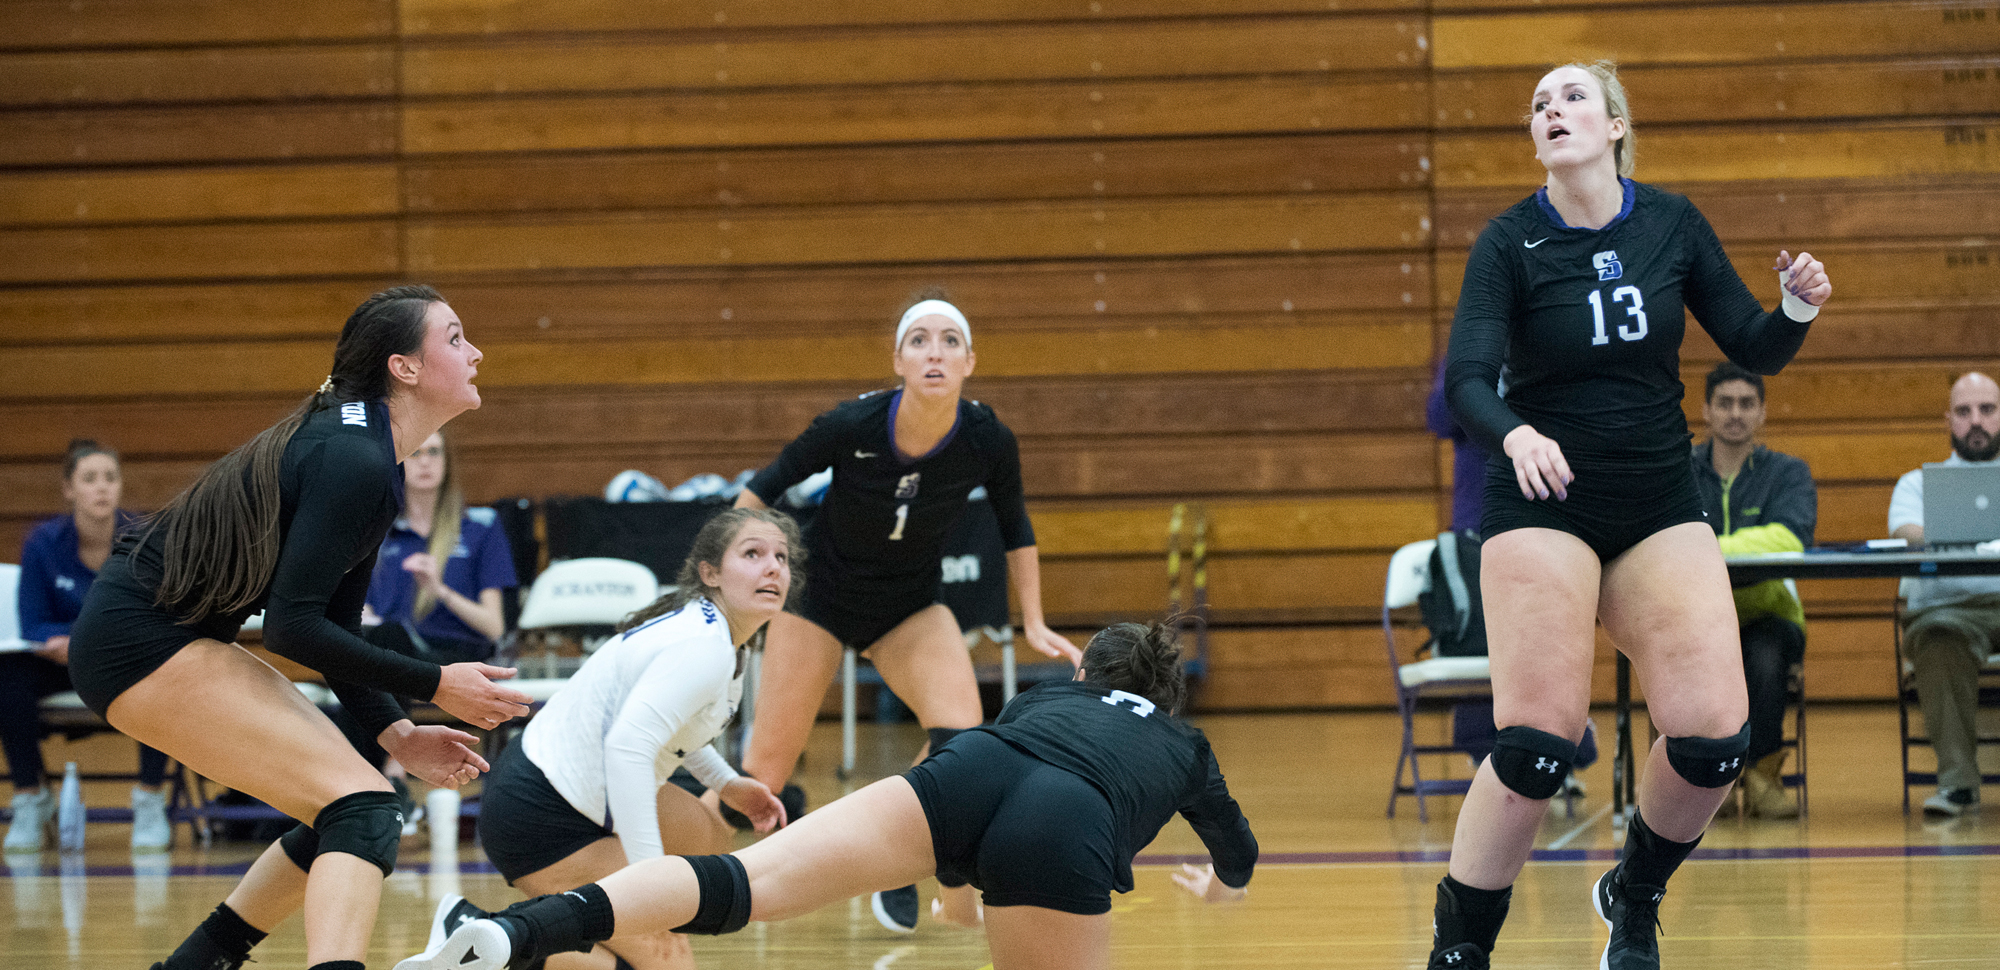 For the first time in program history, the University of Scranton volleyball team will host a Landmark Conference semifinal match inside the John Long Center Wednesday, as they take on third-seeded Susquehanna.